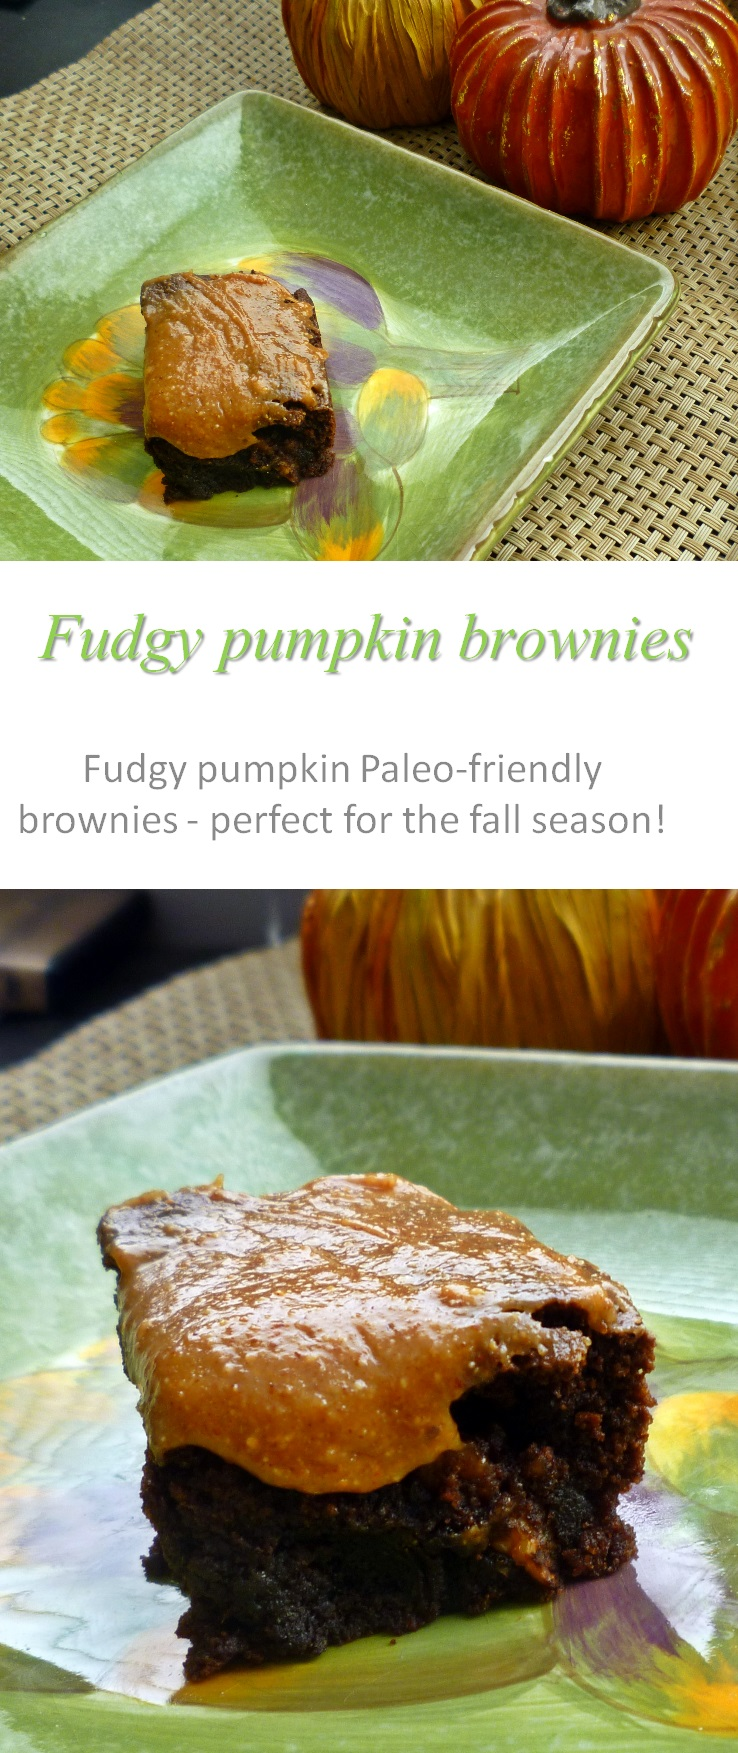 Fudgy, Paleo-friendly pumpkin brownies - enjoy this gooey goodness every season of the year! #brownies